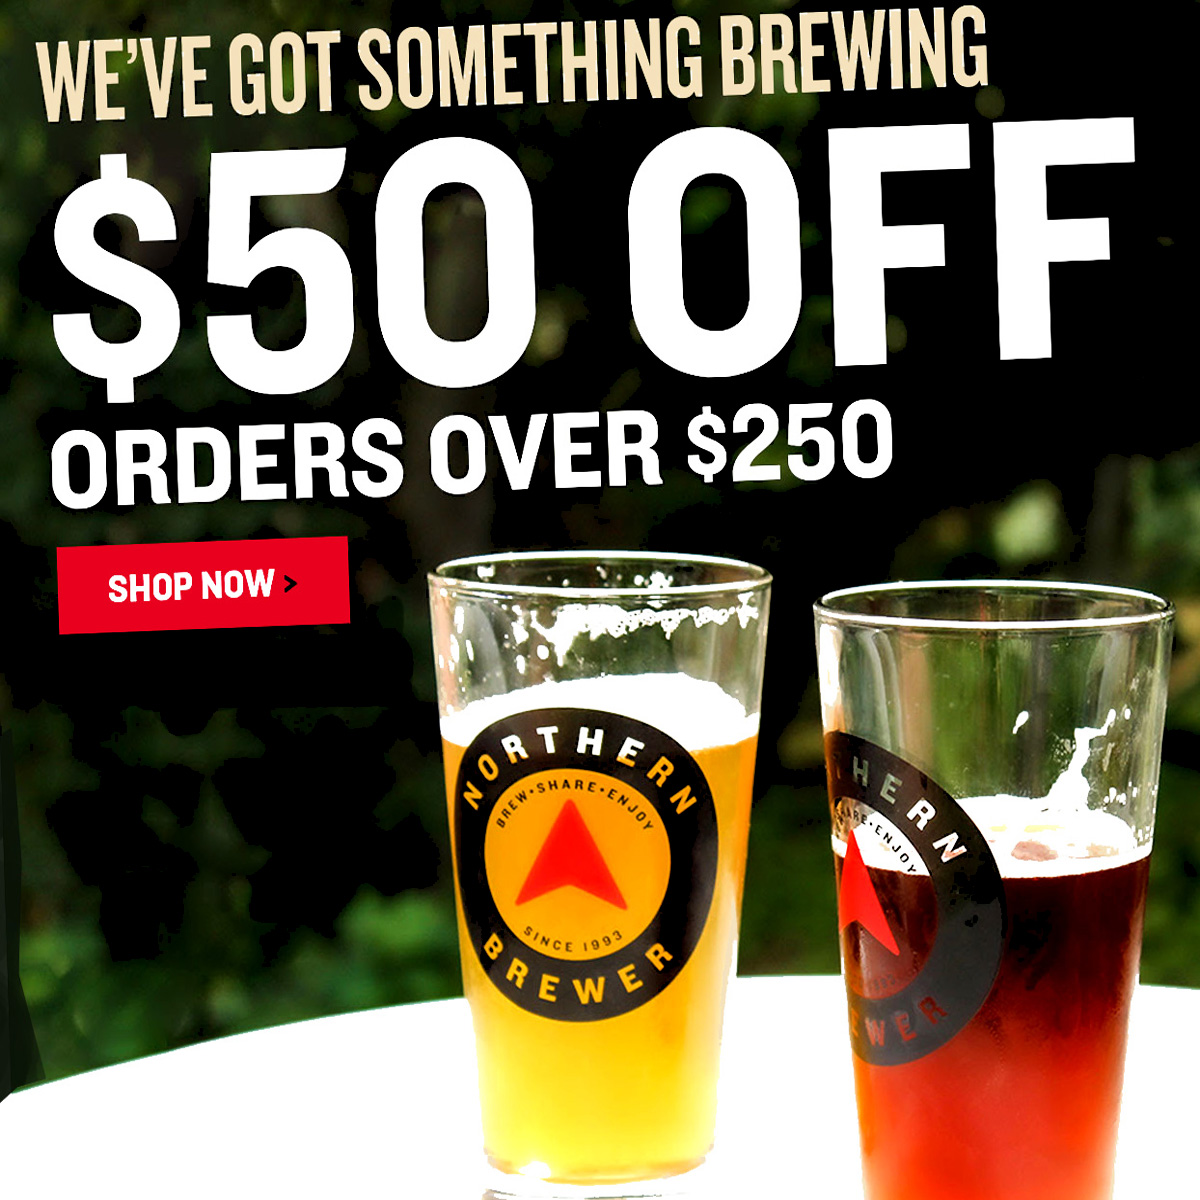 Home Wine Making Coupon Codes for Save $50 on a $250 Purchase at Northern Brewer with this NorthernBrewer.com Promo Code Coupon Code